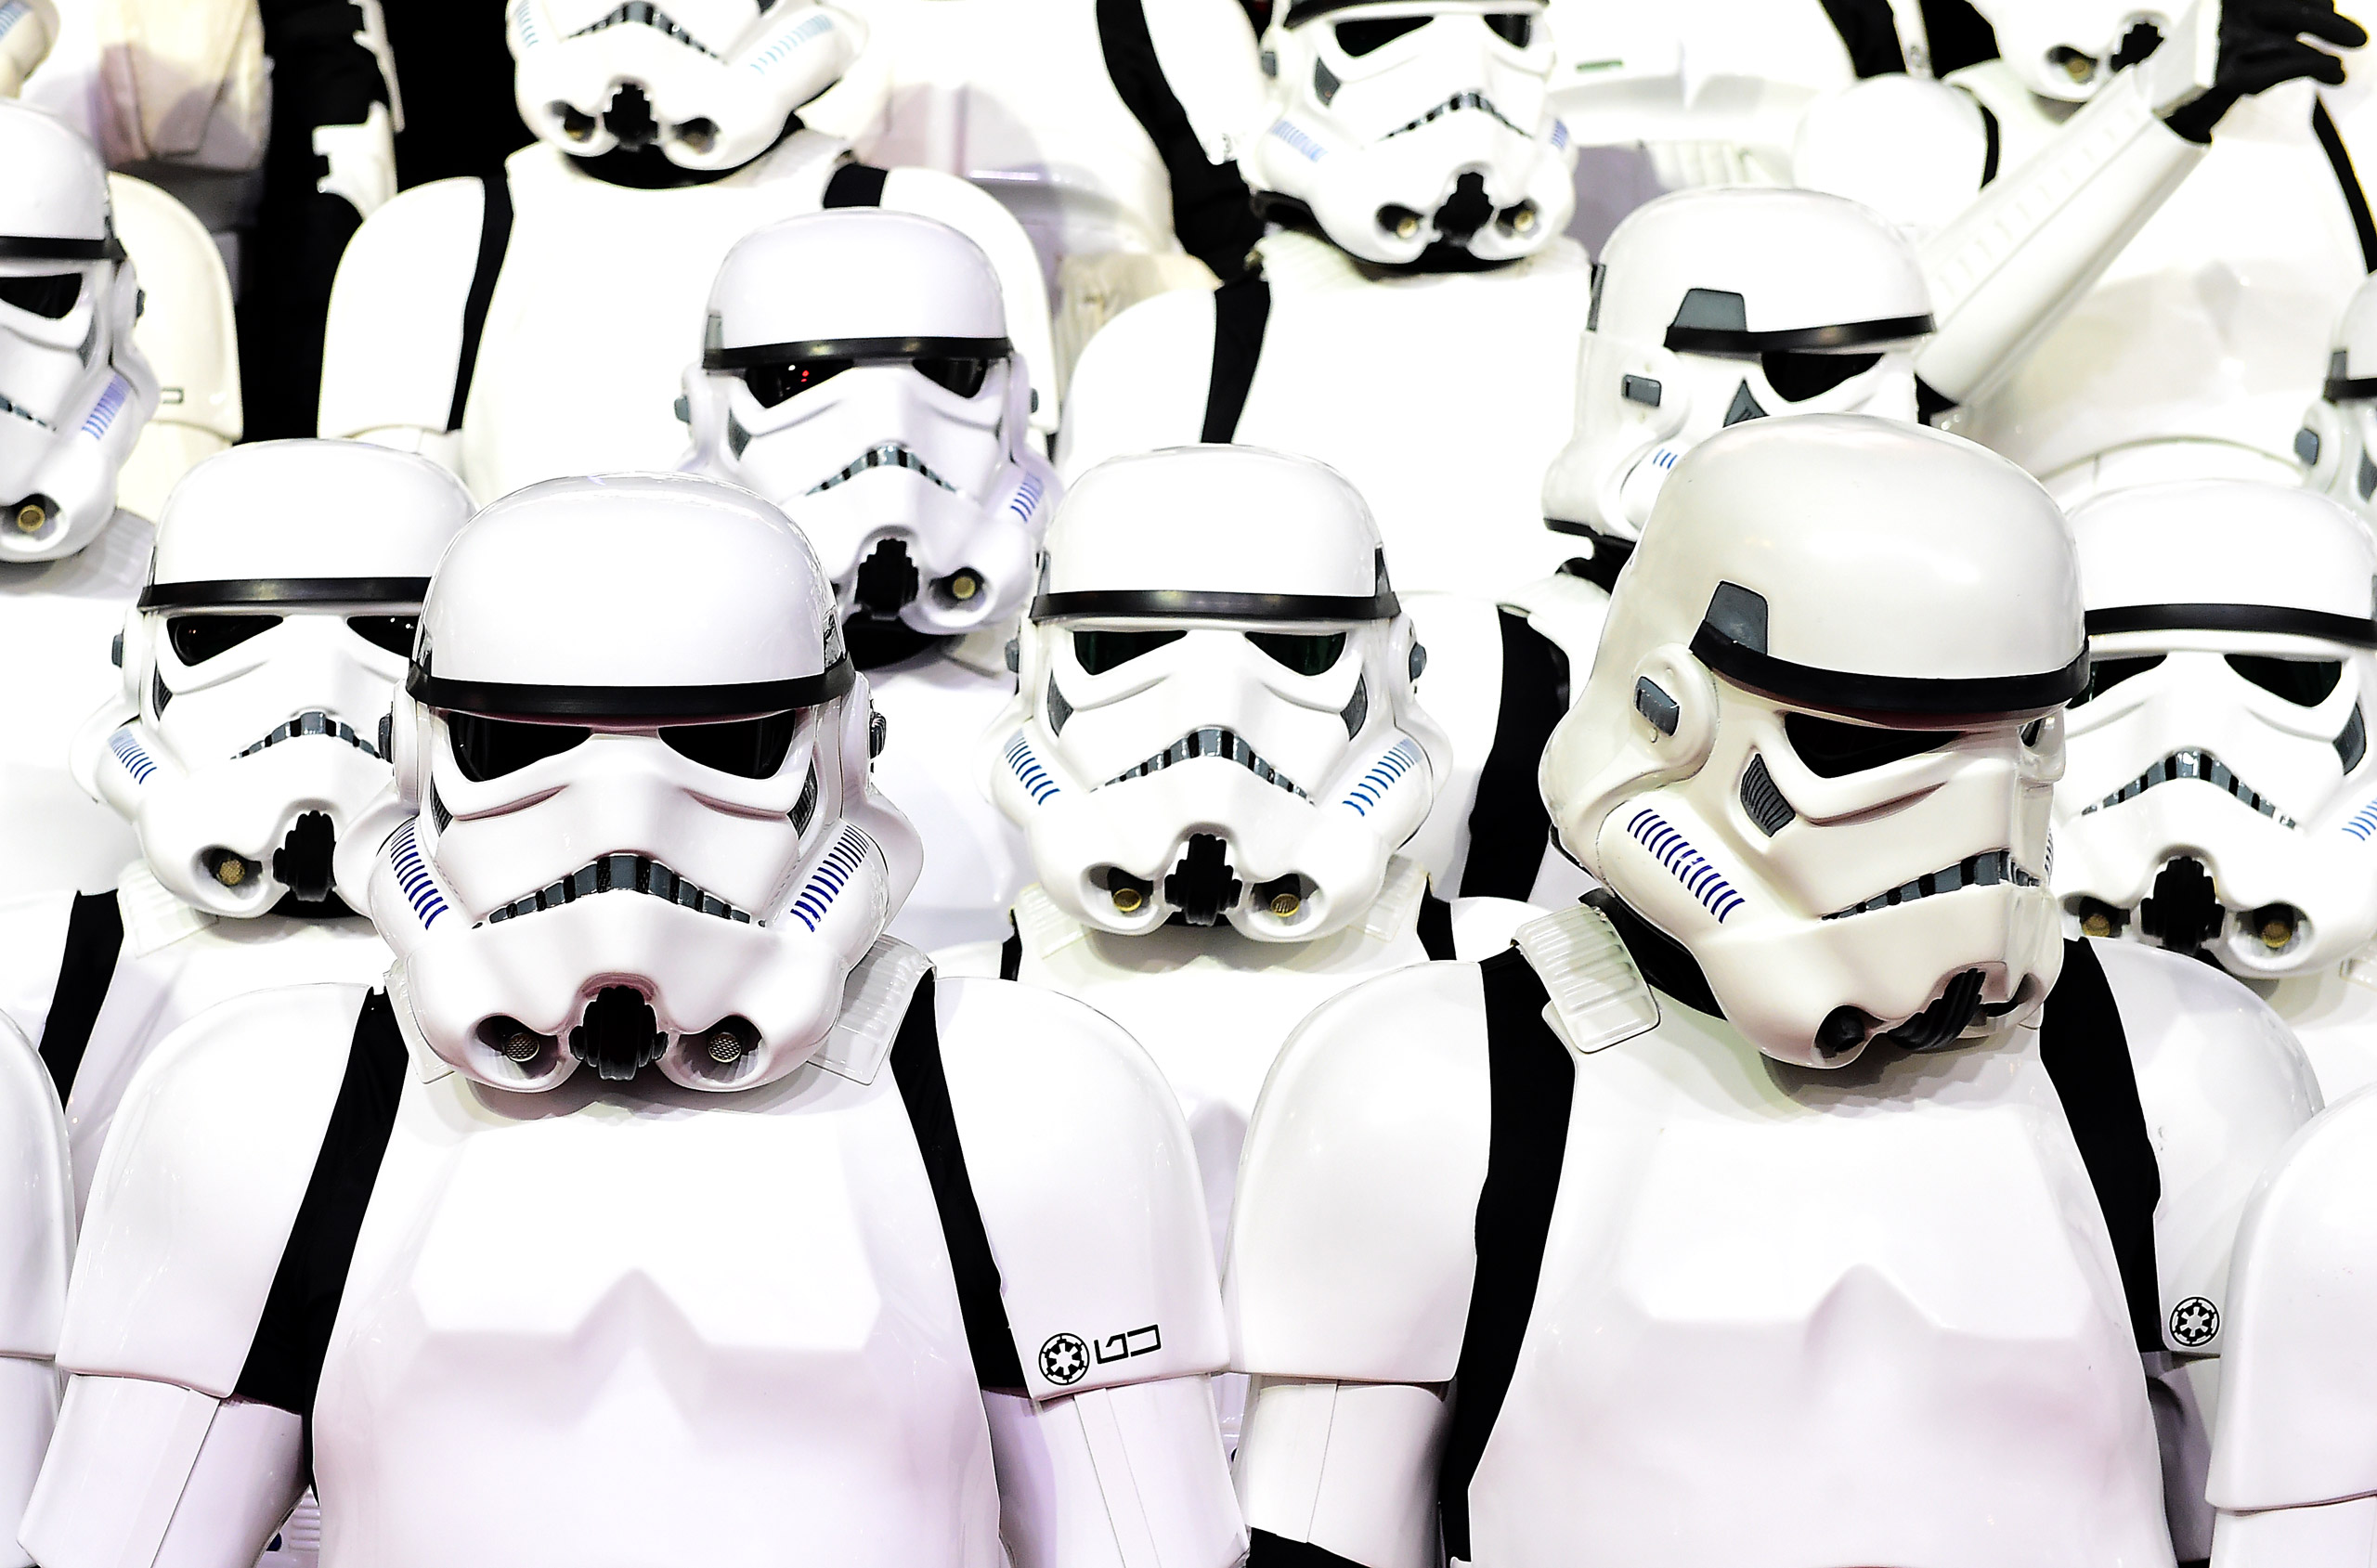 Storm Troopers attending the Star Wars: The Force Awakens European Premiere held in Leicester Square, London on Dec. 16, 2015.